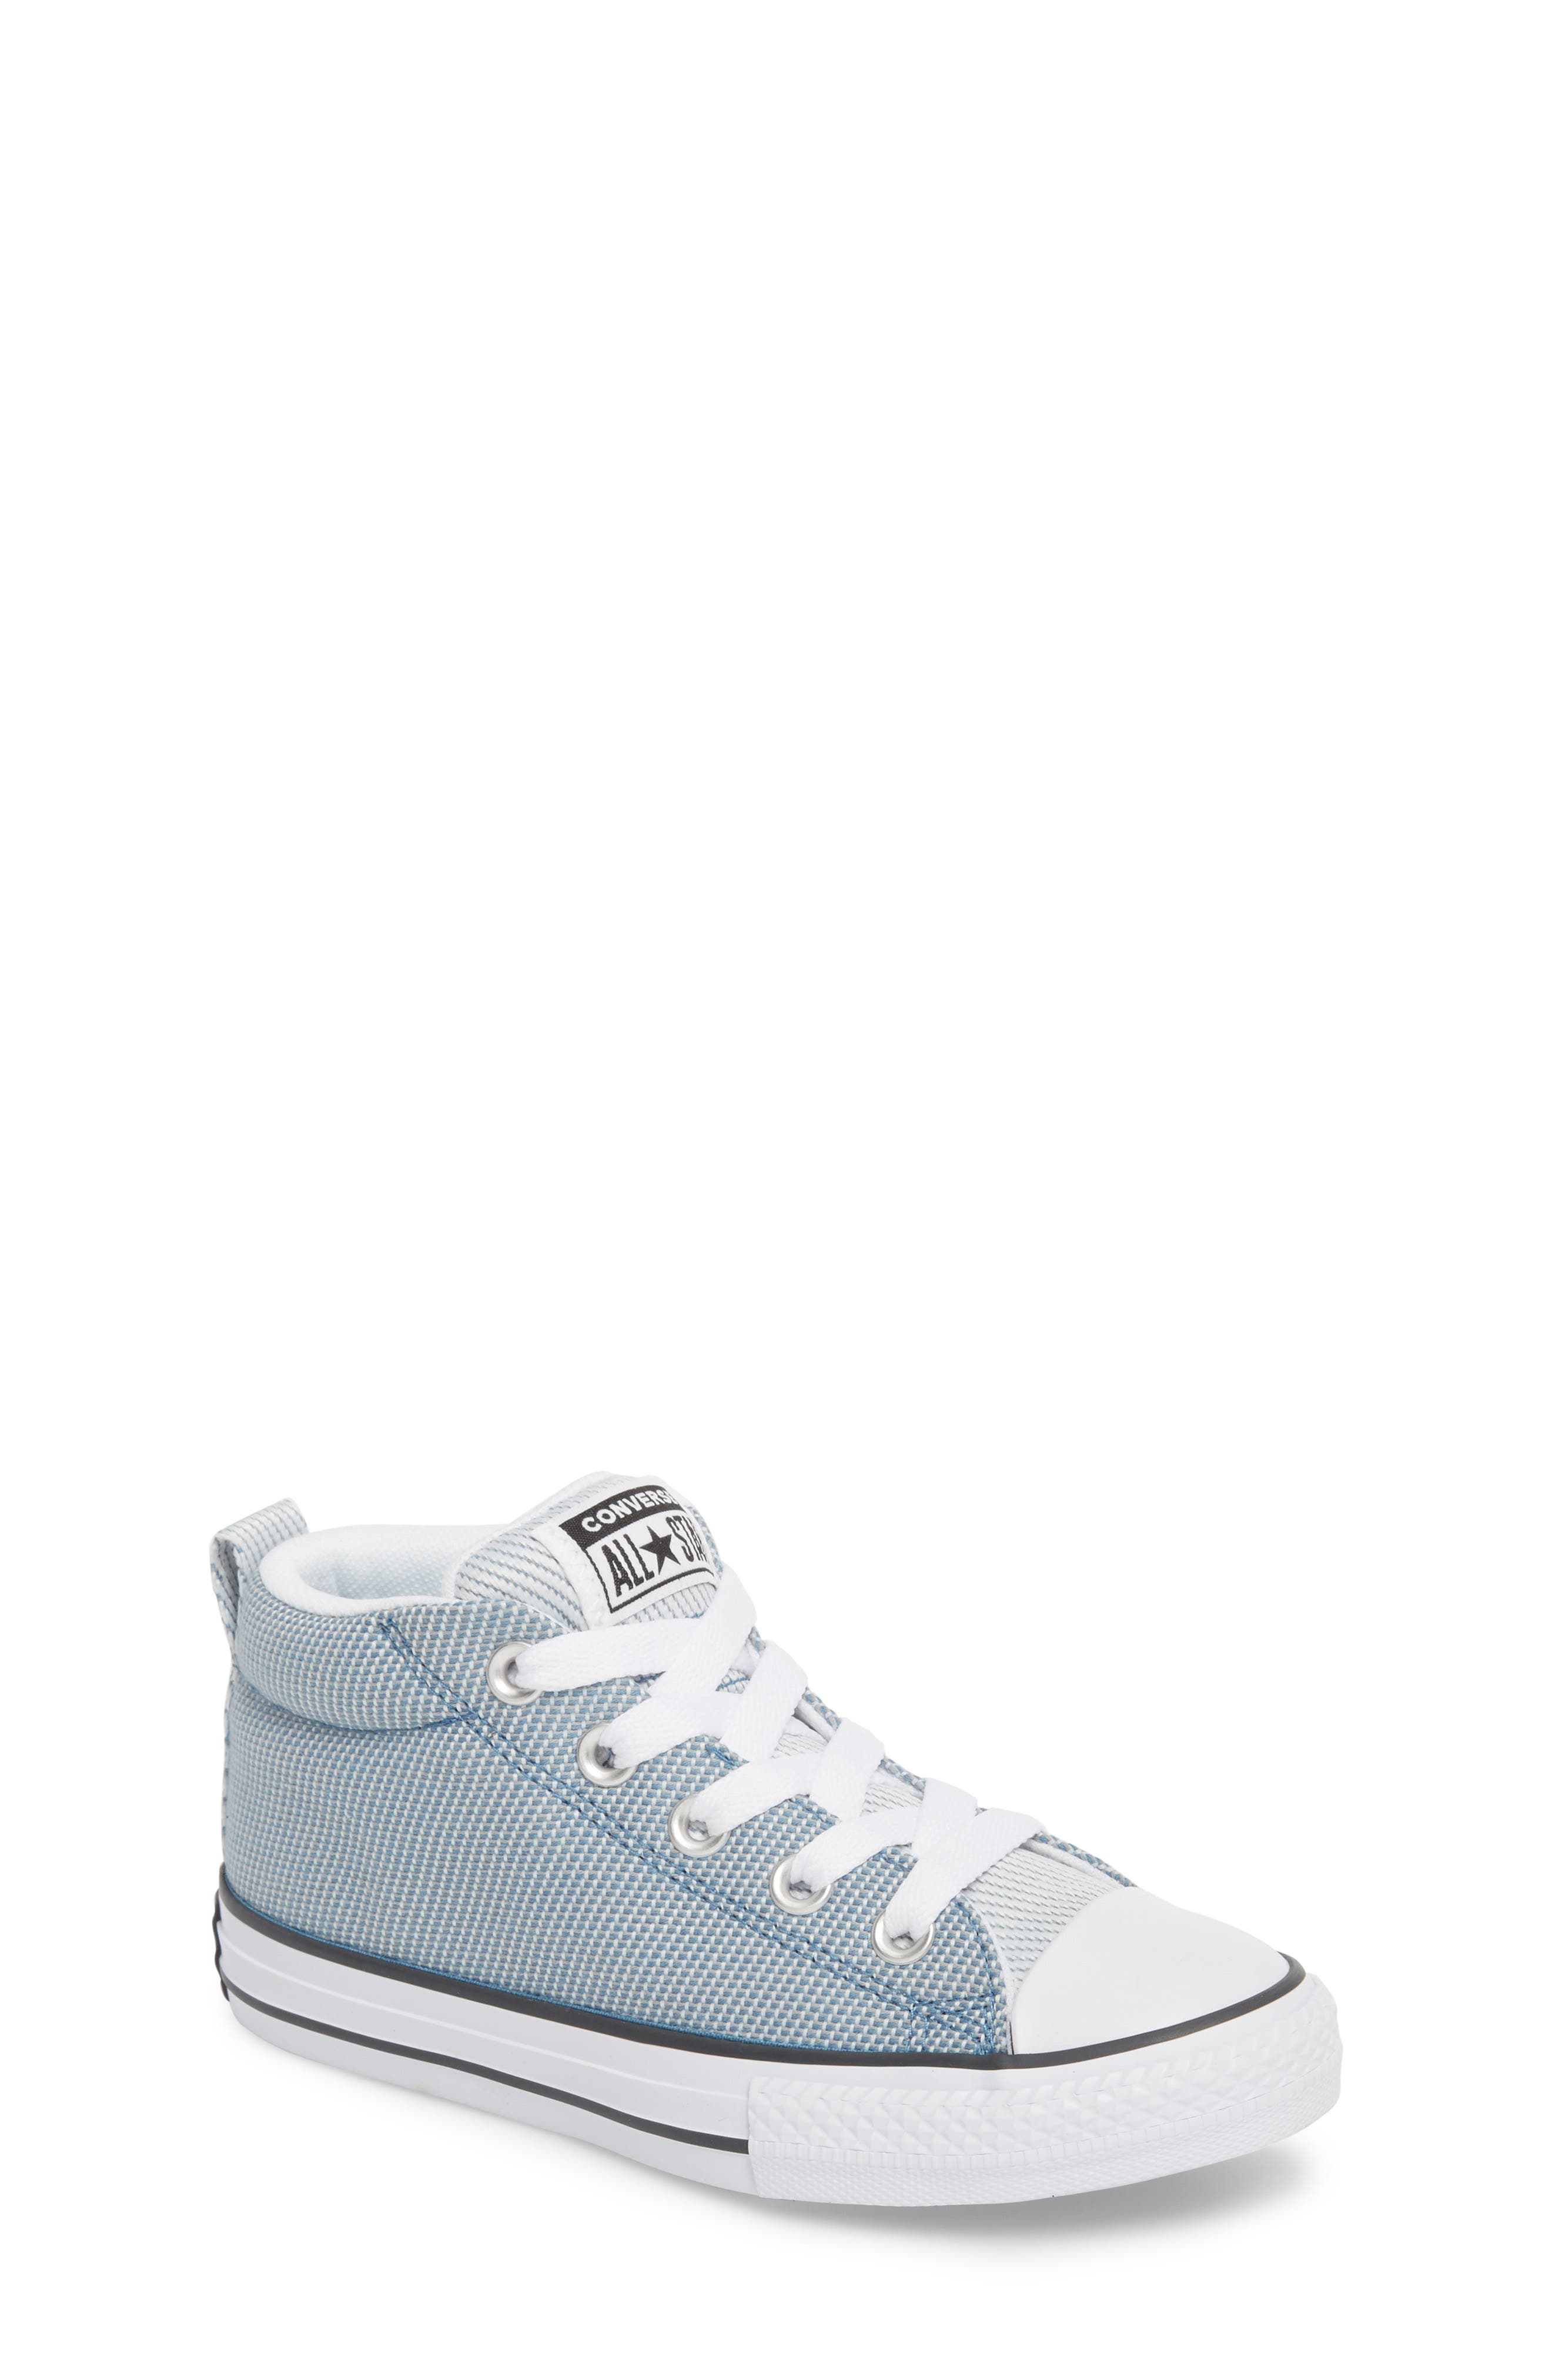 Chuck Taylor<sup>®</sup> All Star<sup>®</sup> Woven Street Mid Sneaker,                         Main,                         color, 400